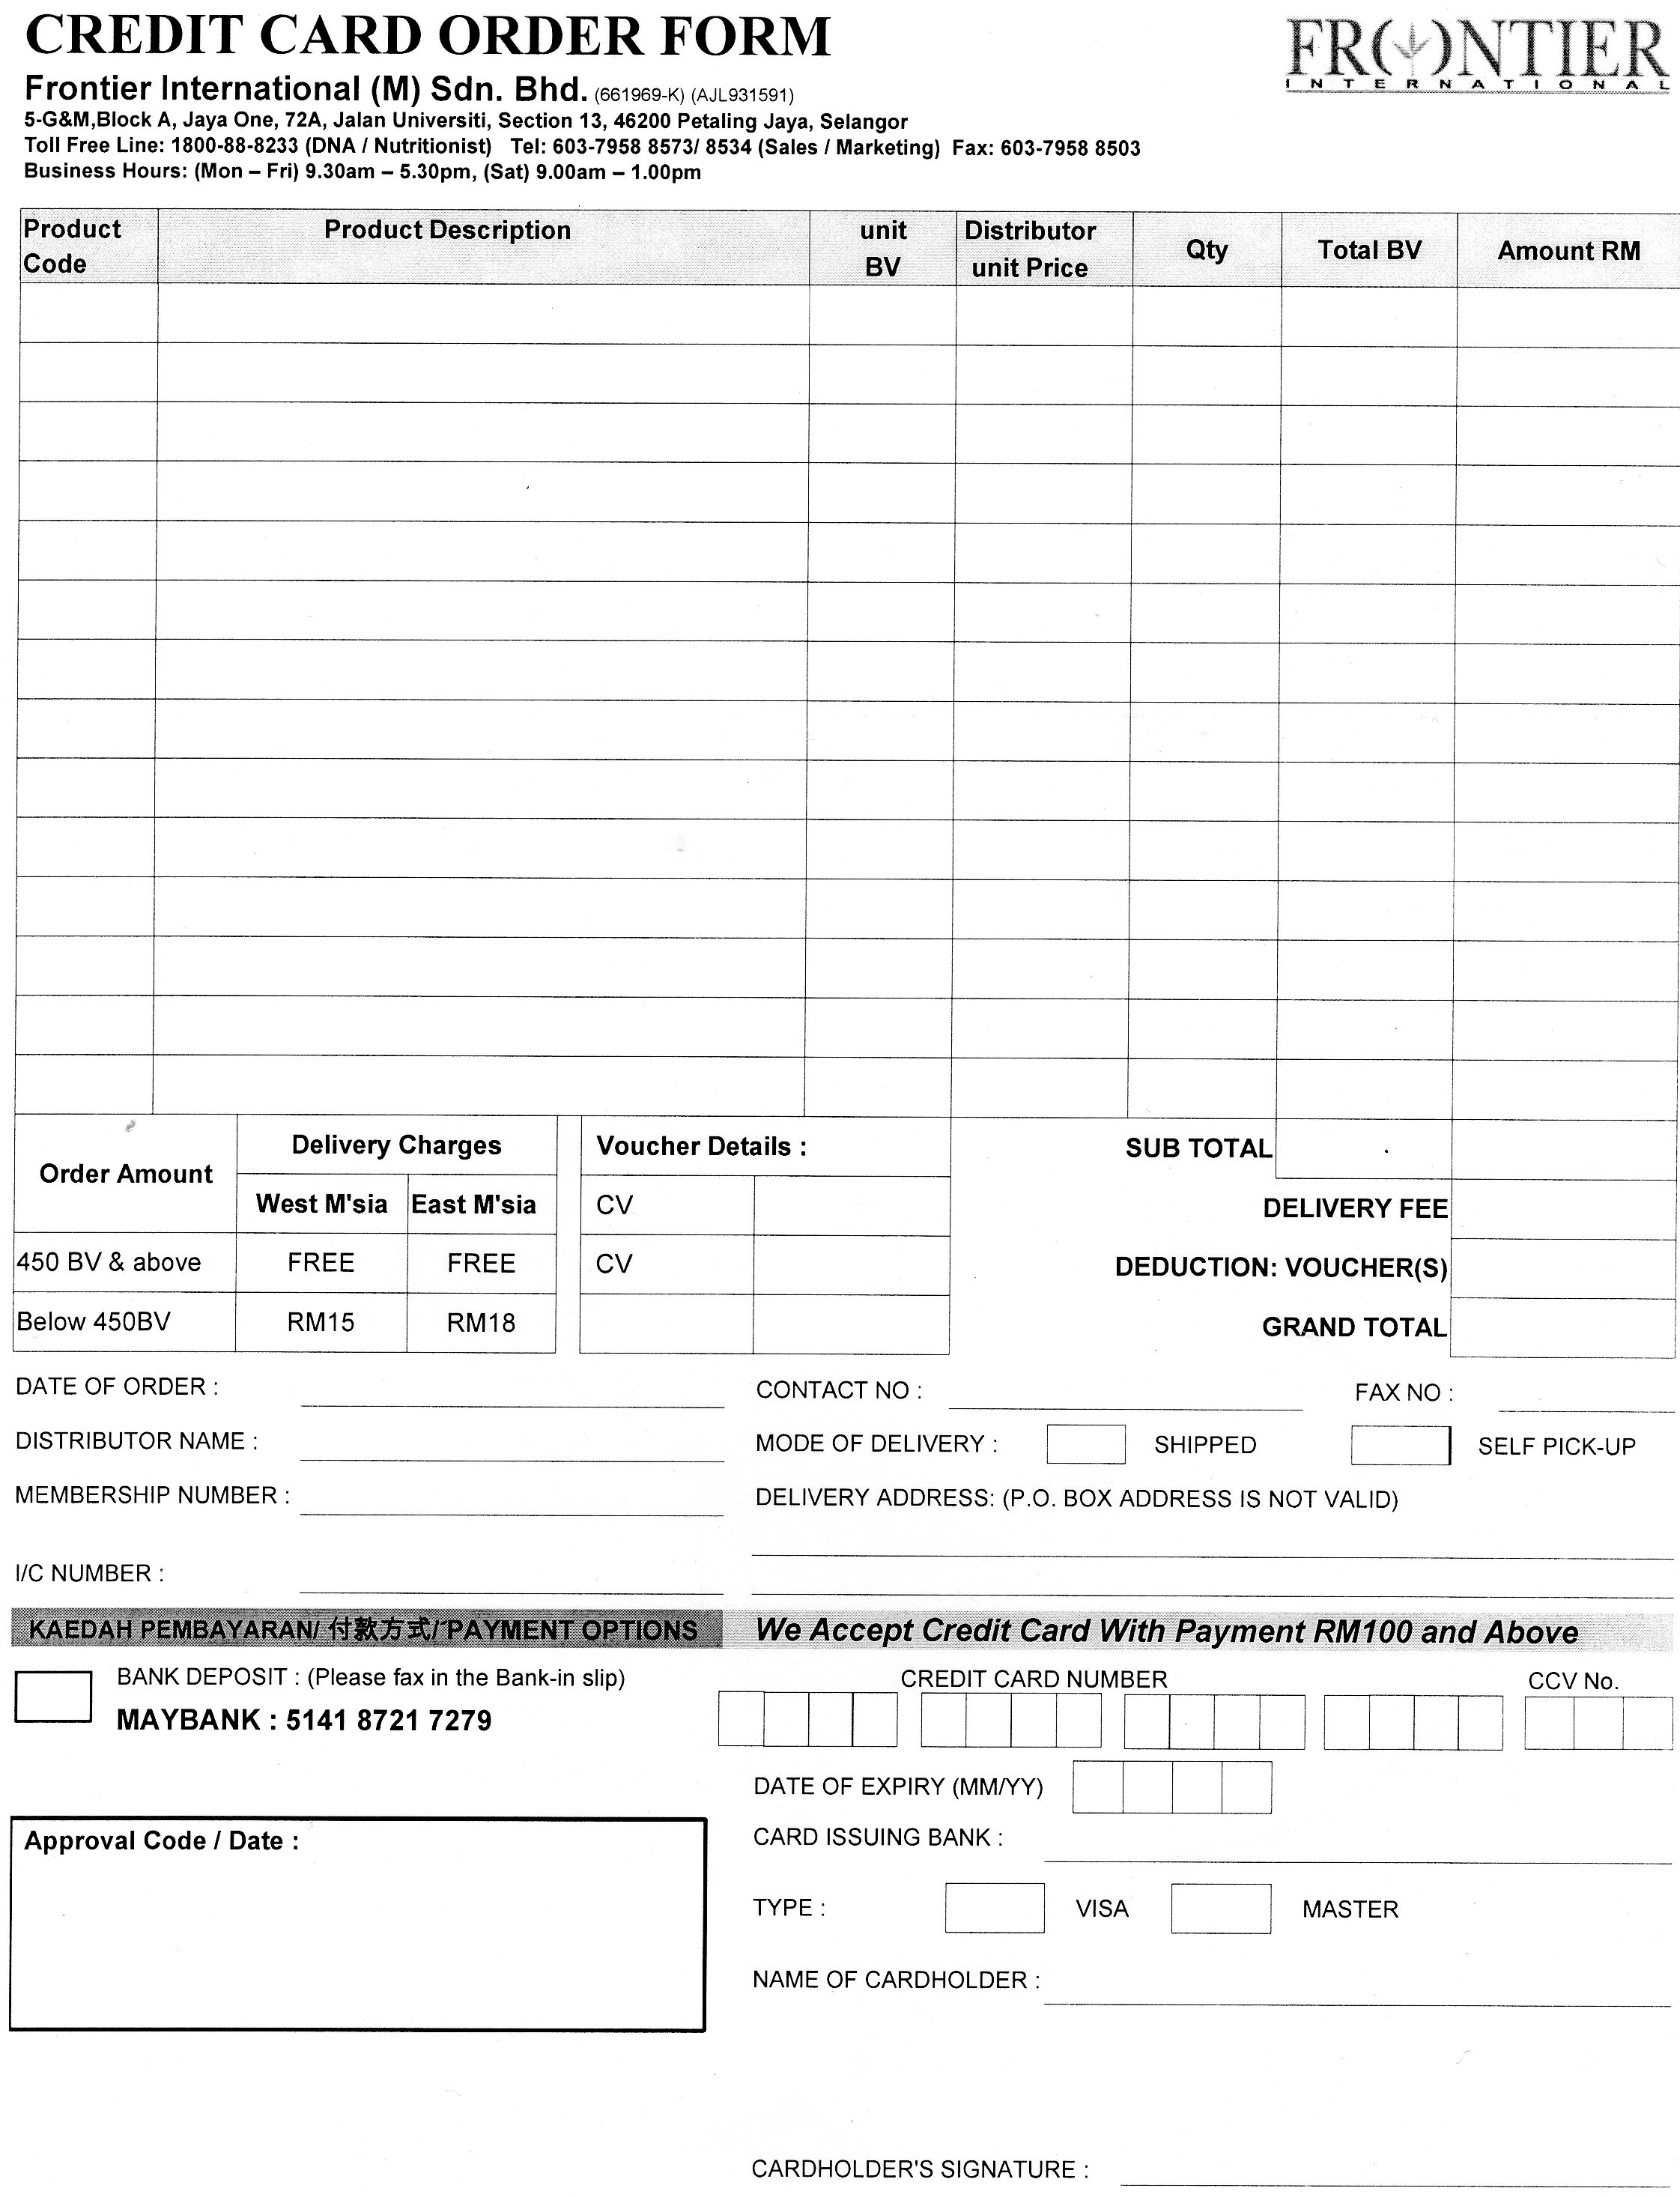 Credit card order form charlotte clergy coalition credit card order form friedricerecipe Image collections